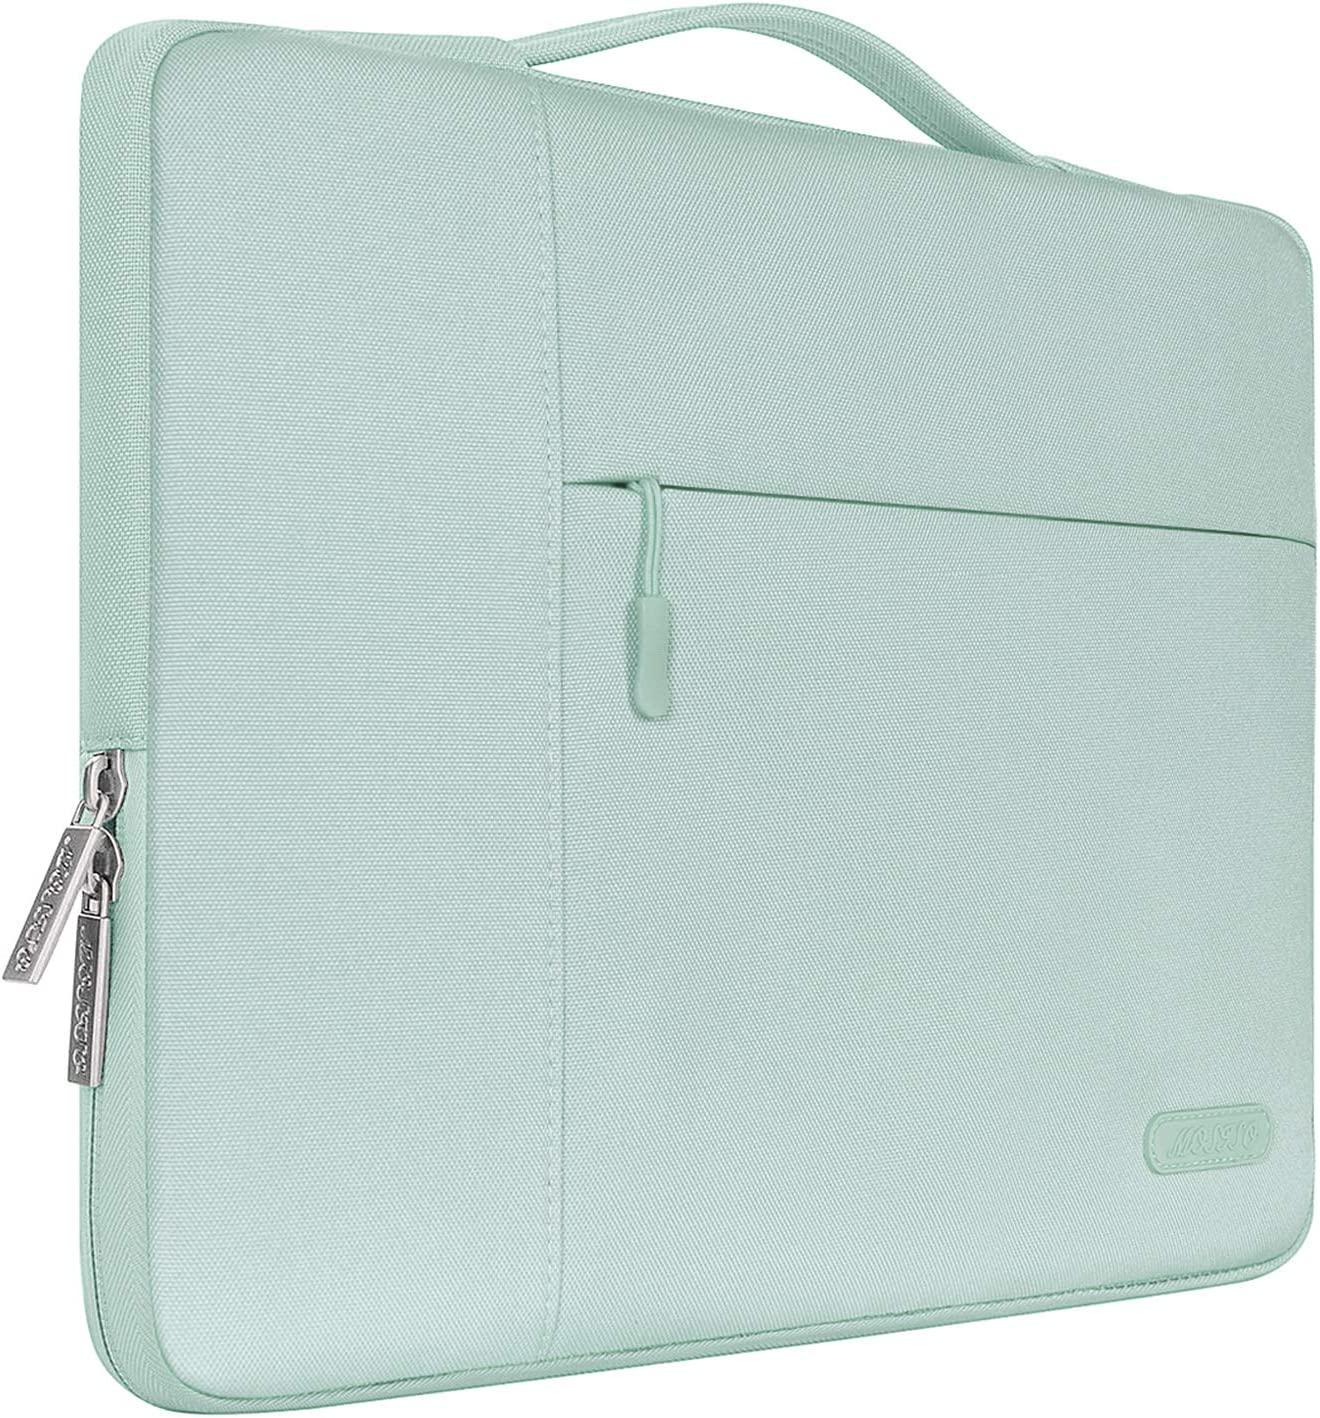 MOSISO Laptop Sleeve Compatible with MacBook Pro 16 inch with Touch Bar A2141, 15 15.4 15.6 inch Dell HP Asus Acer Samsung Sony Chromebook, Polyester Multifunctional Briefcase Bag, Mint Green